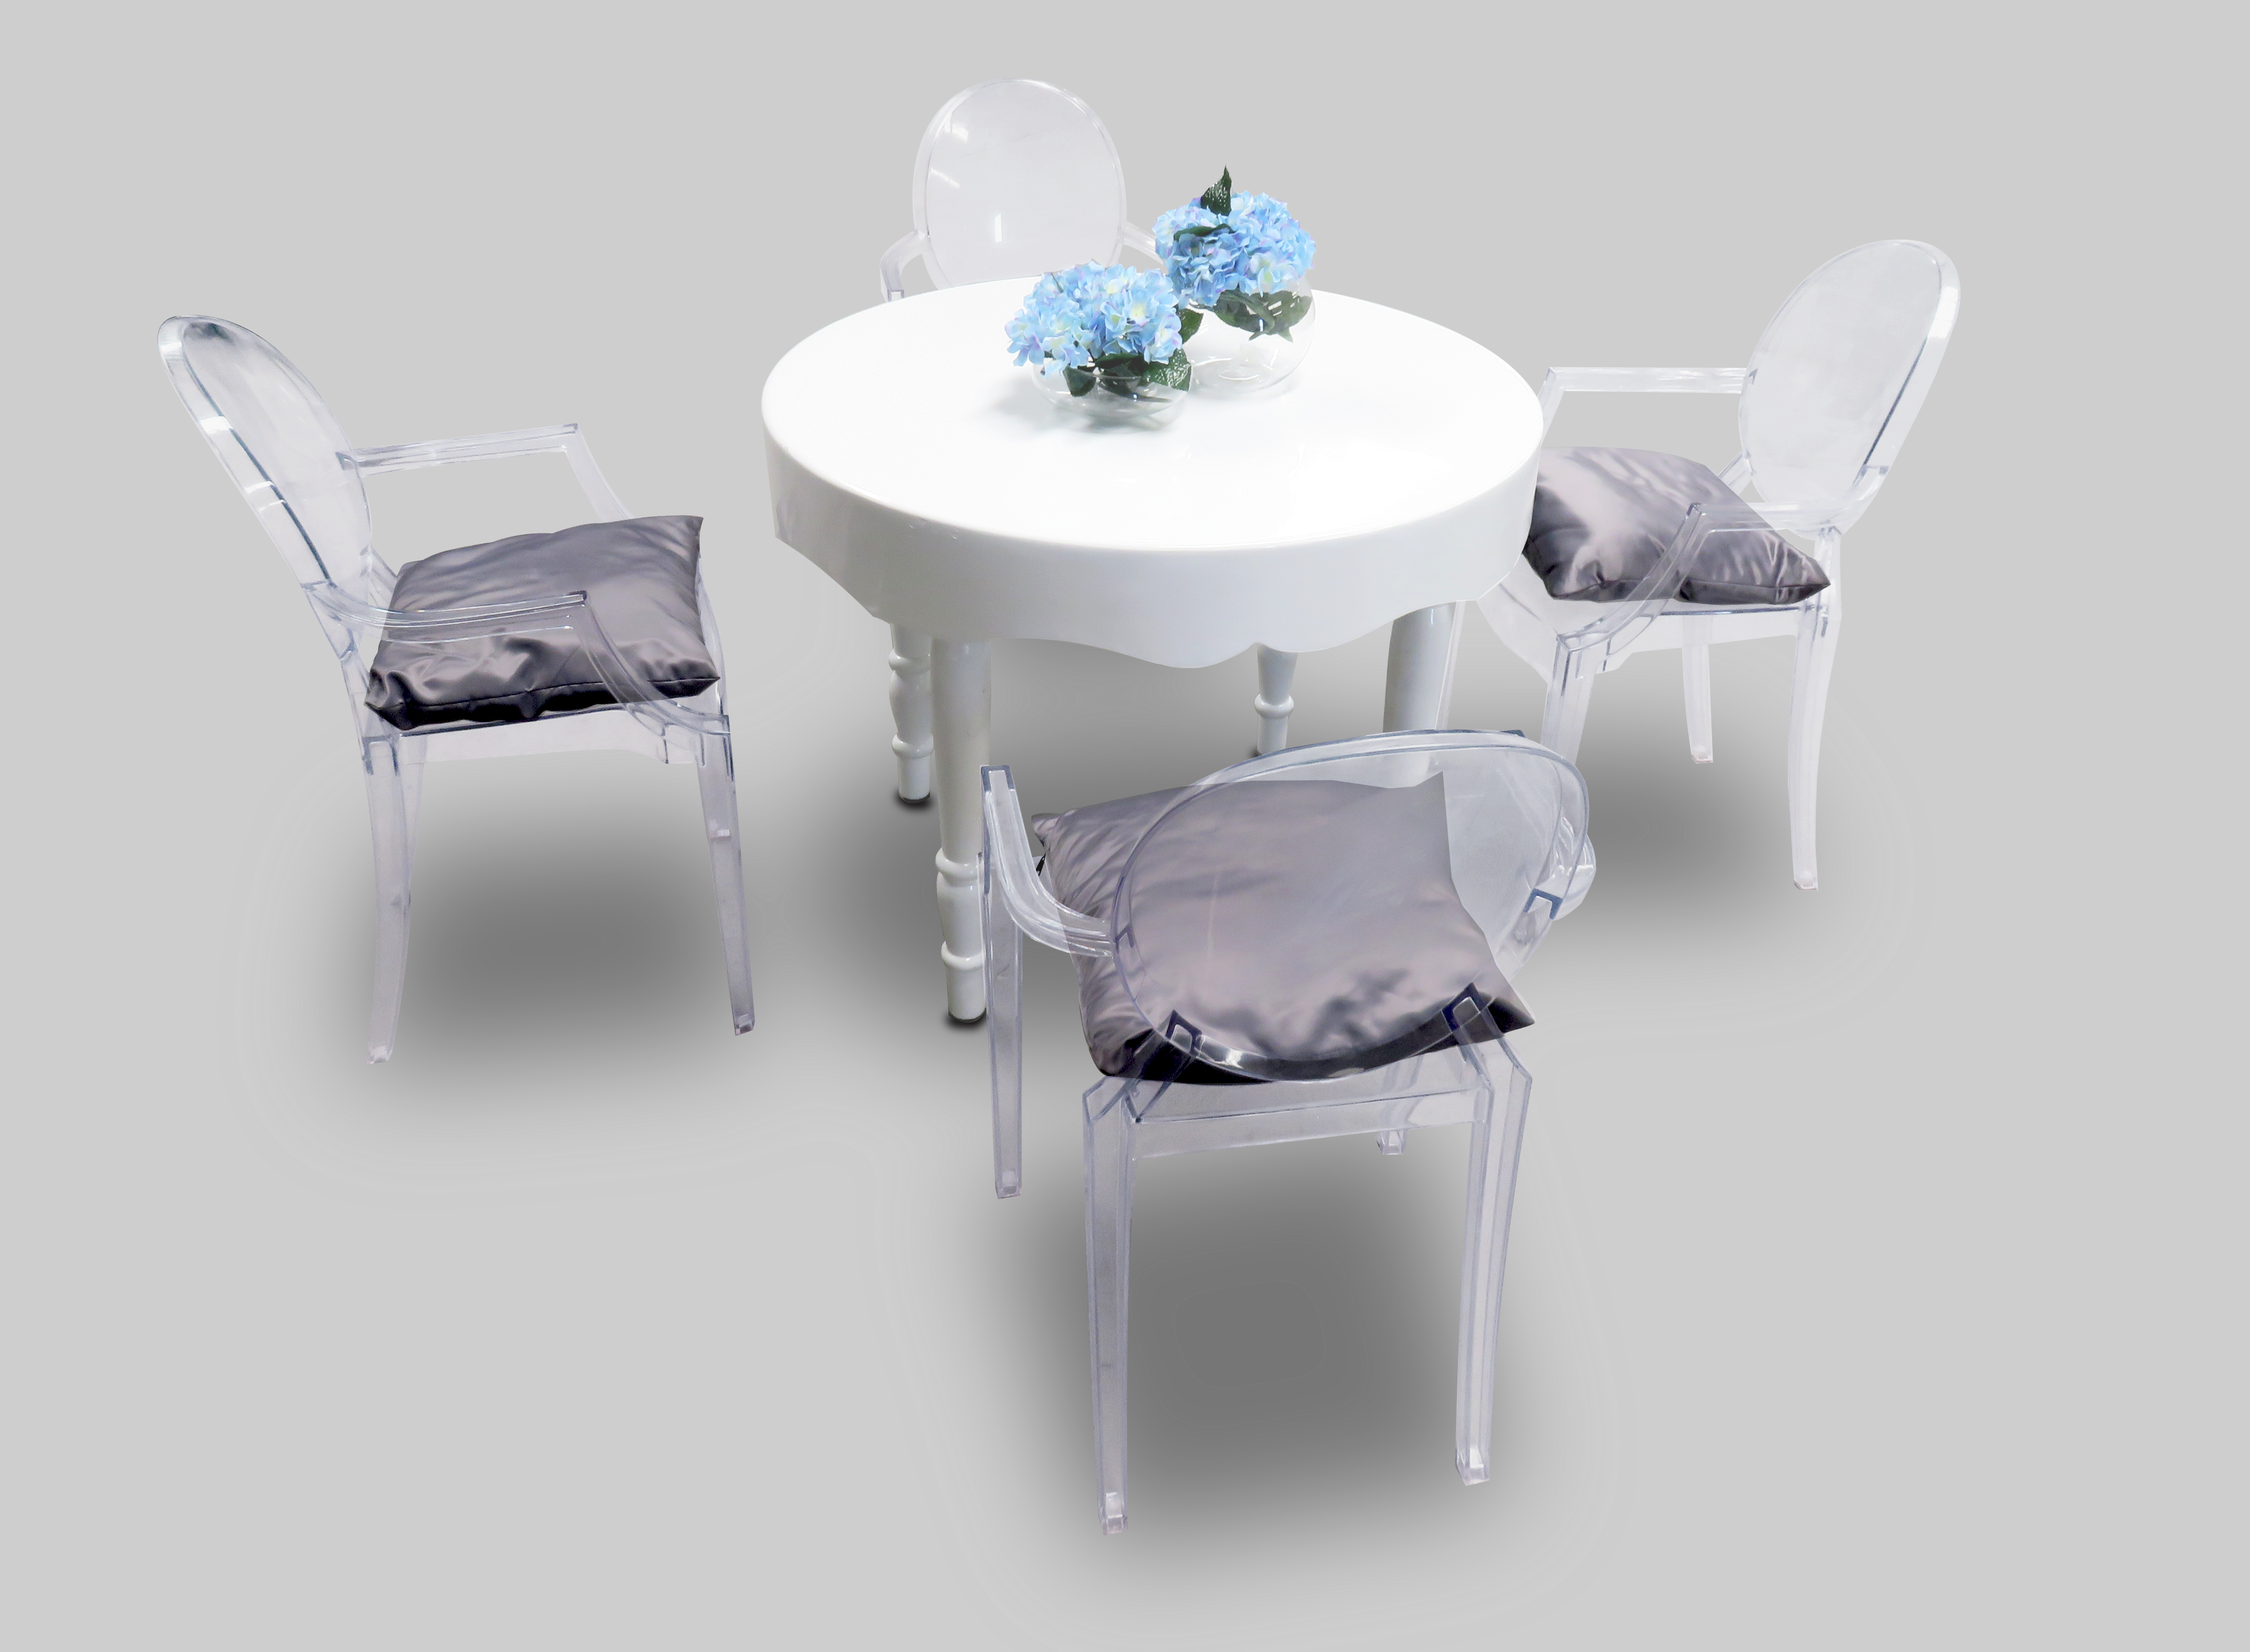 Ghost Chairs And Round TableWhite Dining Room Has  : avalon curved round white dining table setup with dauphin ghost chairs from algarveglobal.com size 4849 x 3561 png 5450kB